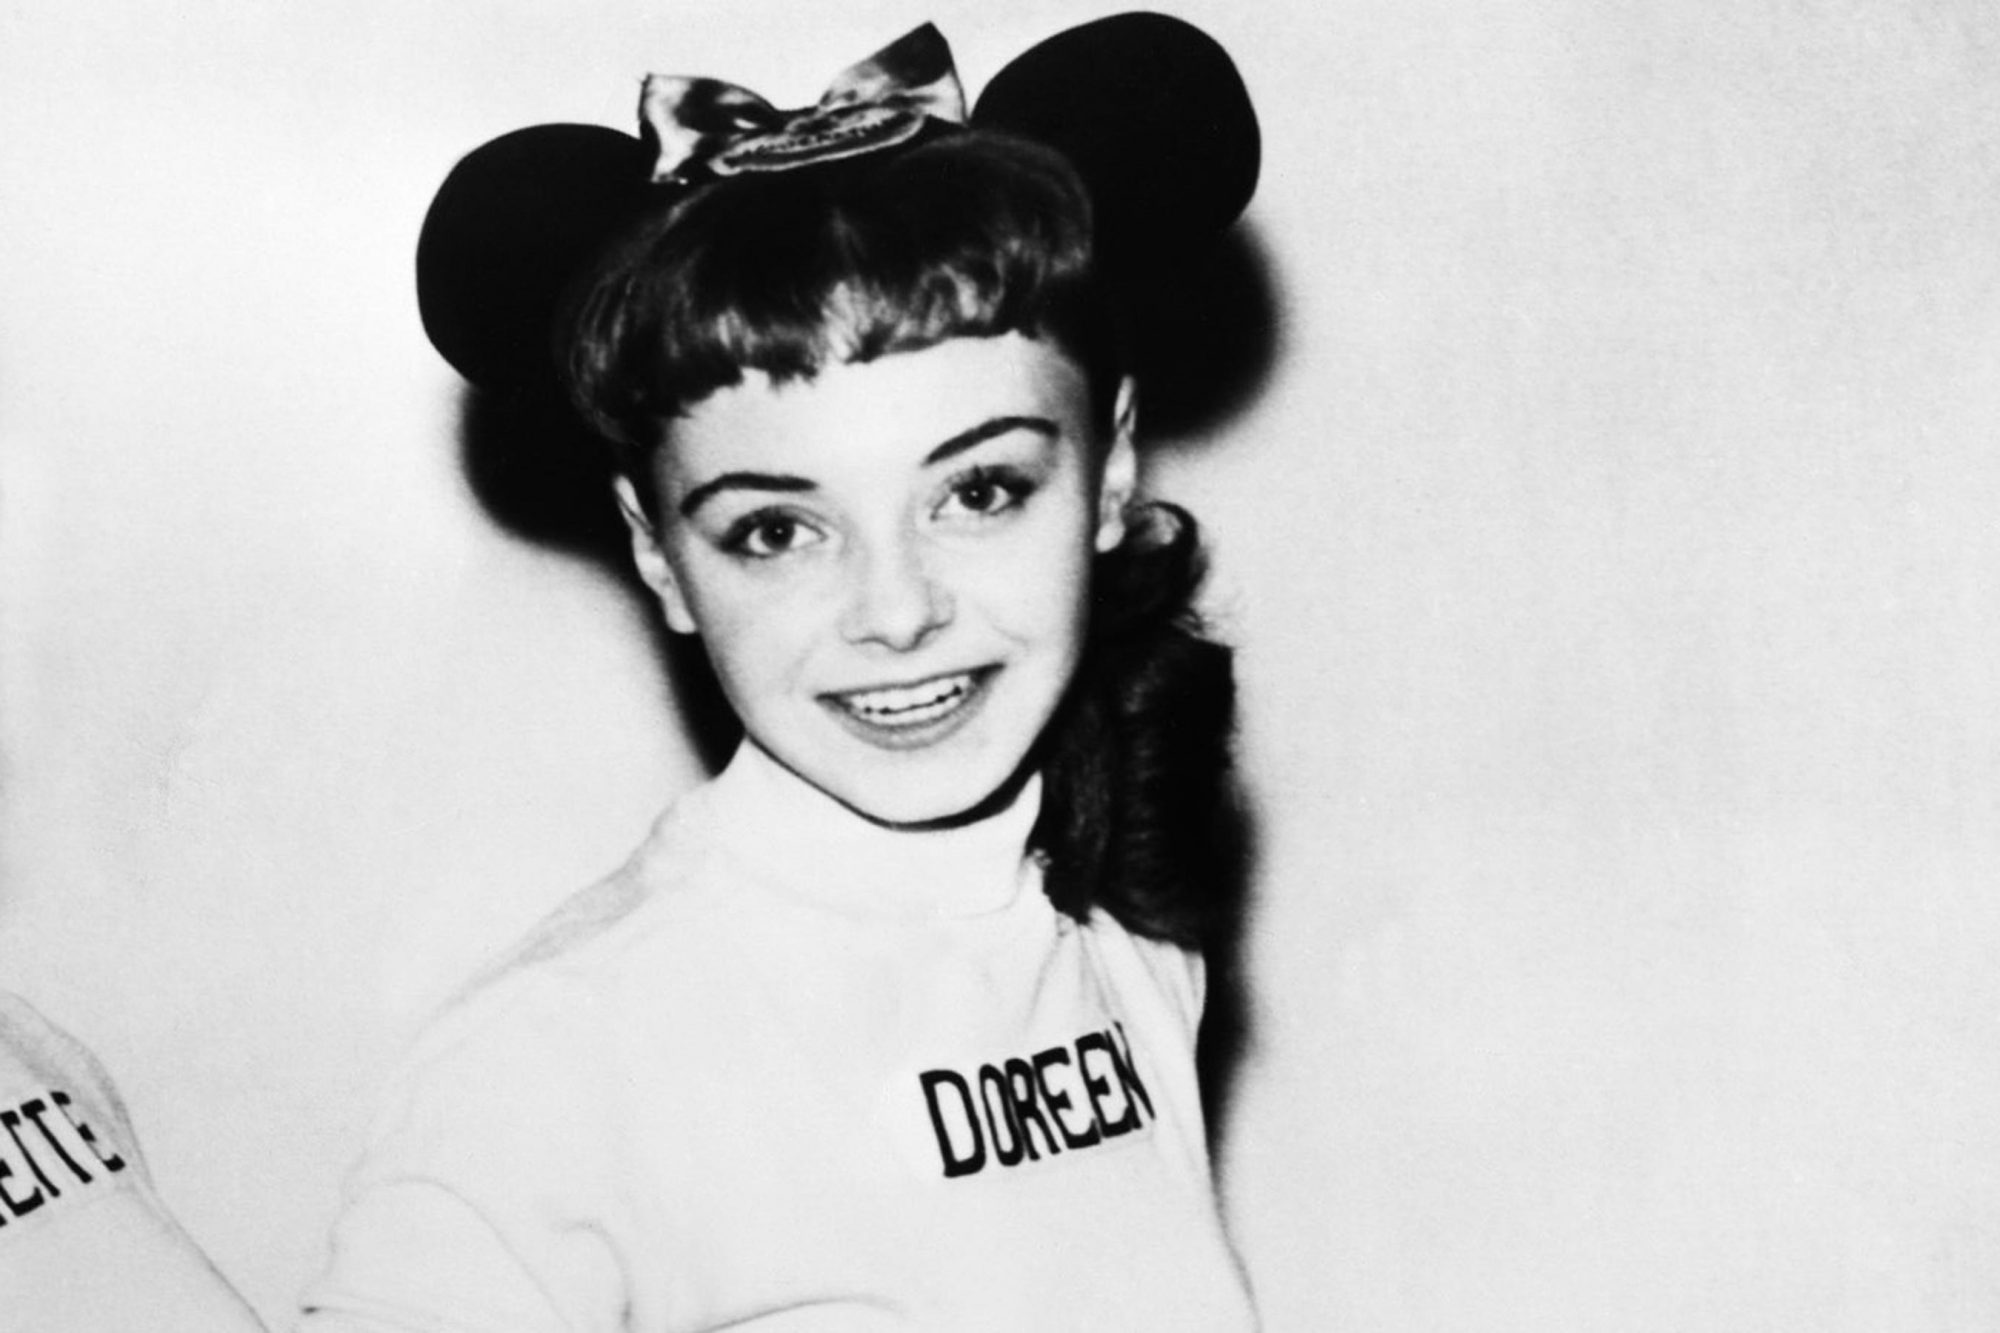 THE MICKEY MOUSE CLUB, from left: Annette Funicello, Doreen Tracey, 1955-1959